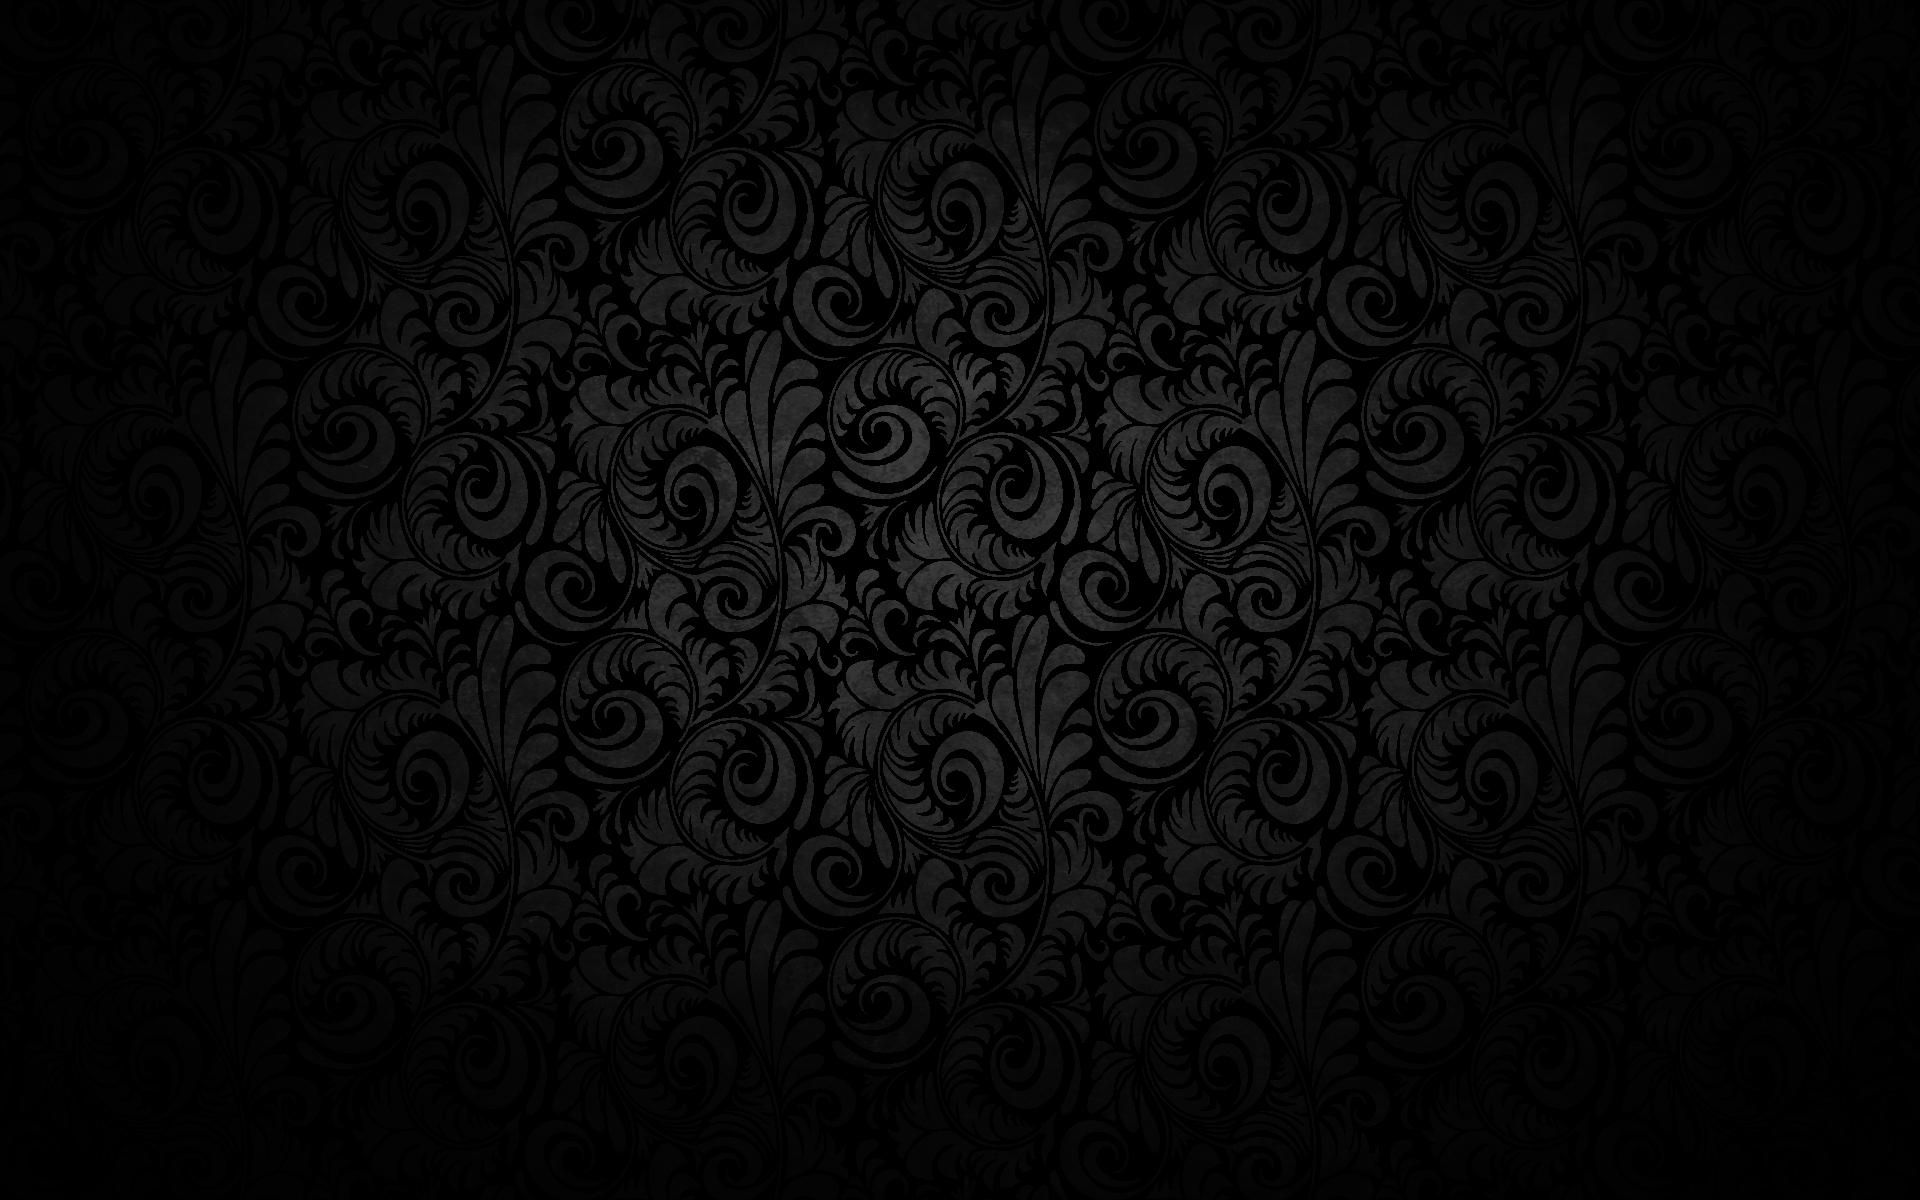 gothic wallpapers android apps on google play 1280a—875 gothic pictures wallpapers 56 wallpapers